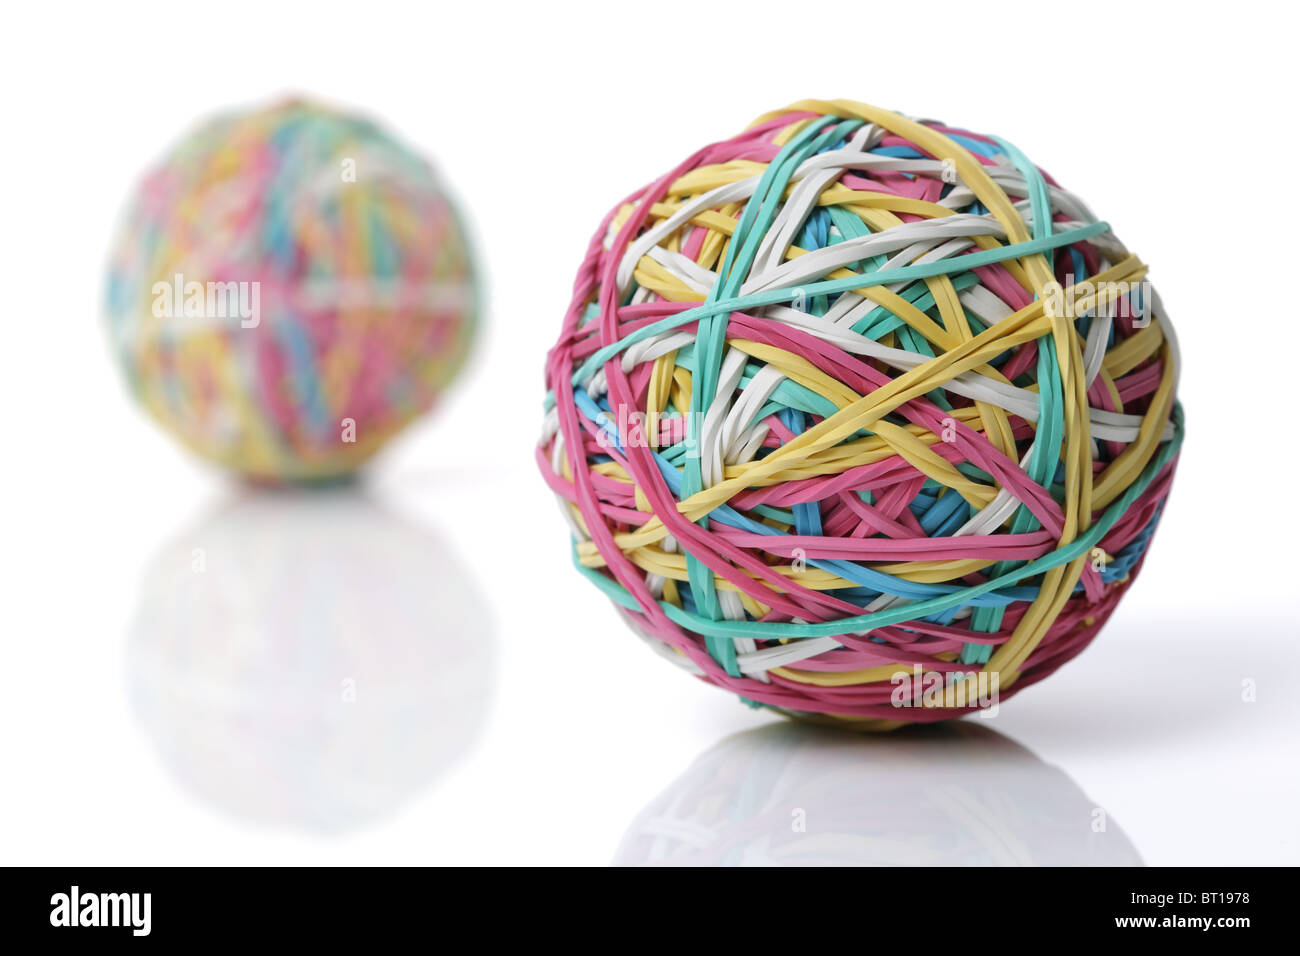 Rubber band ball - Stock Image